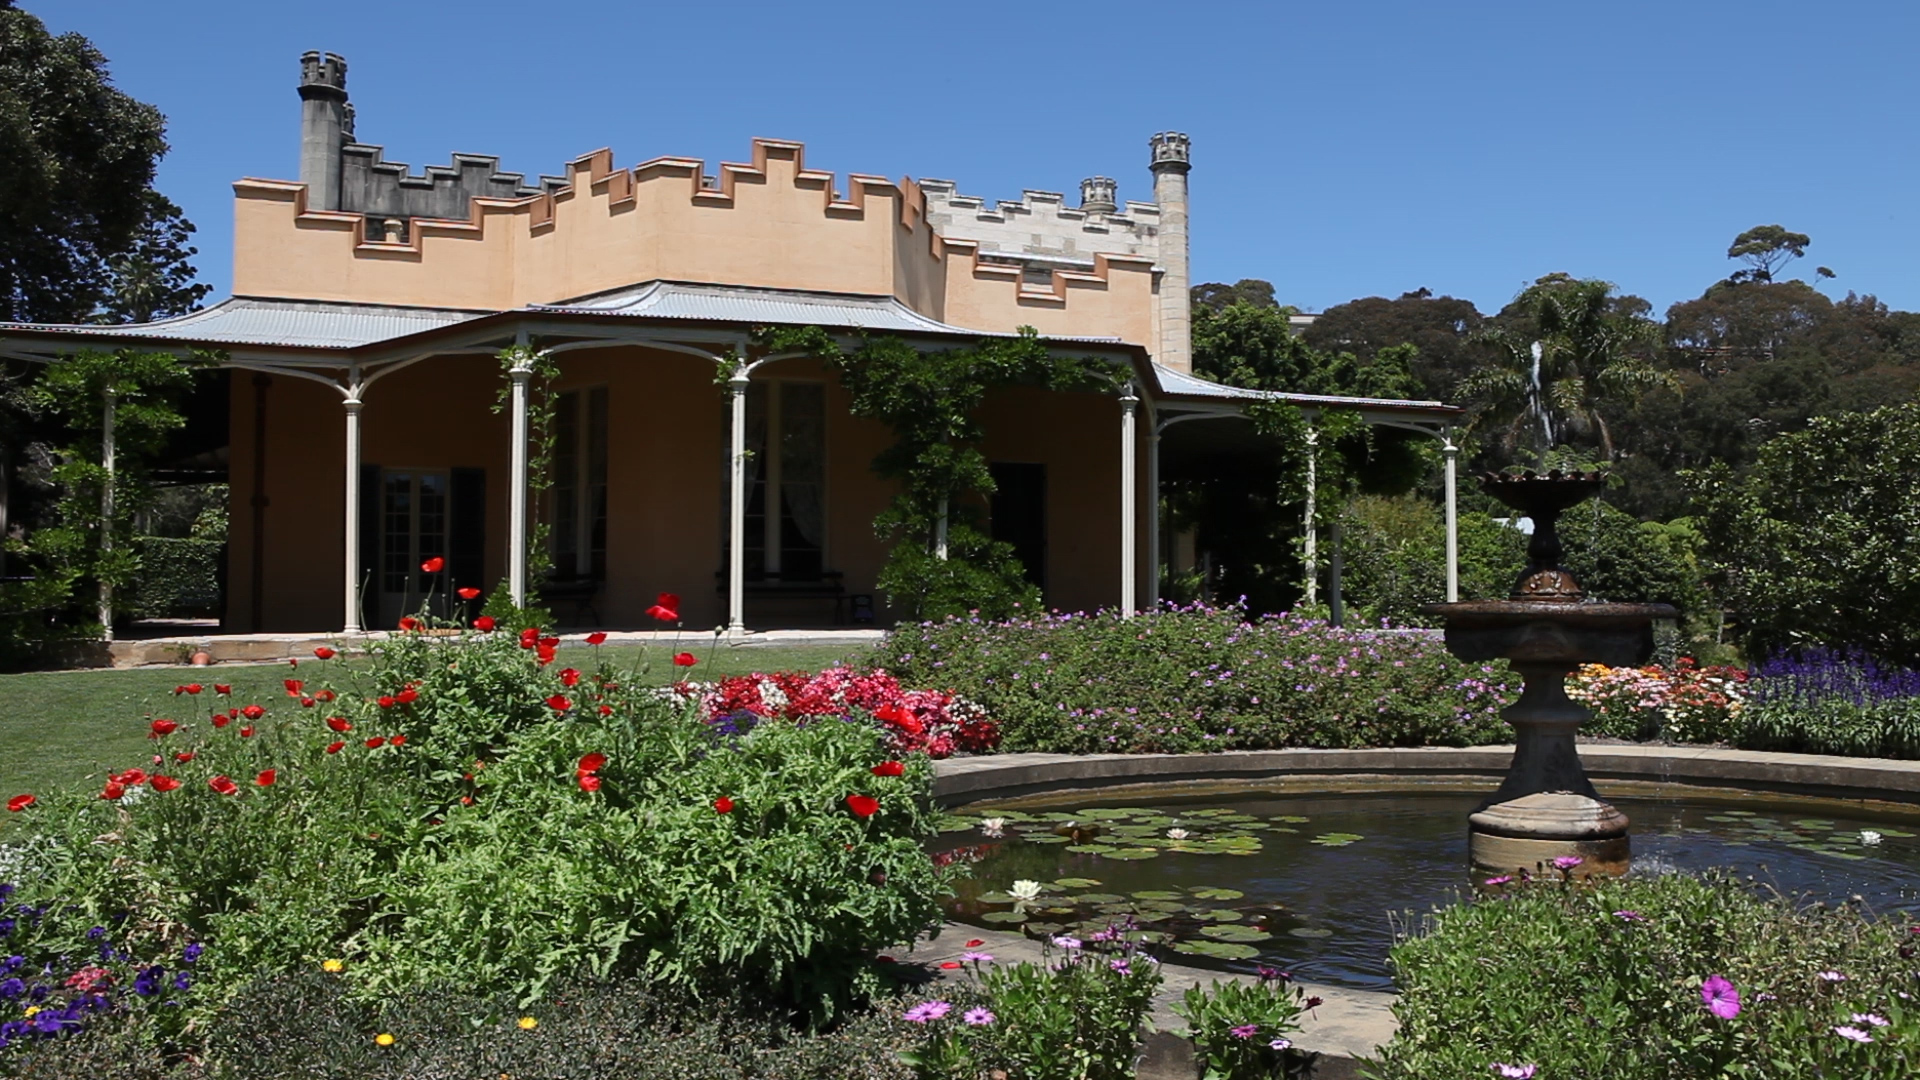 Vaucluse house sydney living museums for Best home image